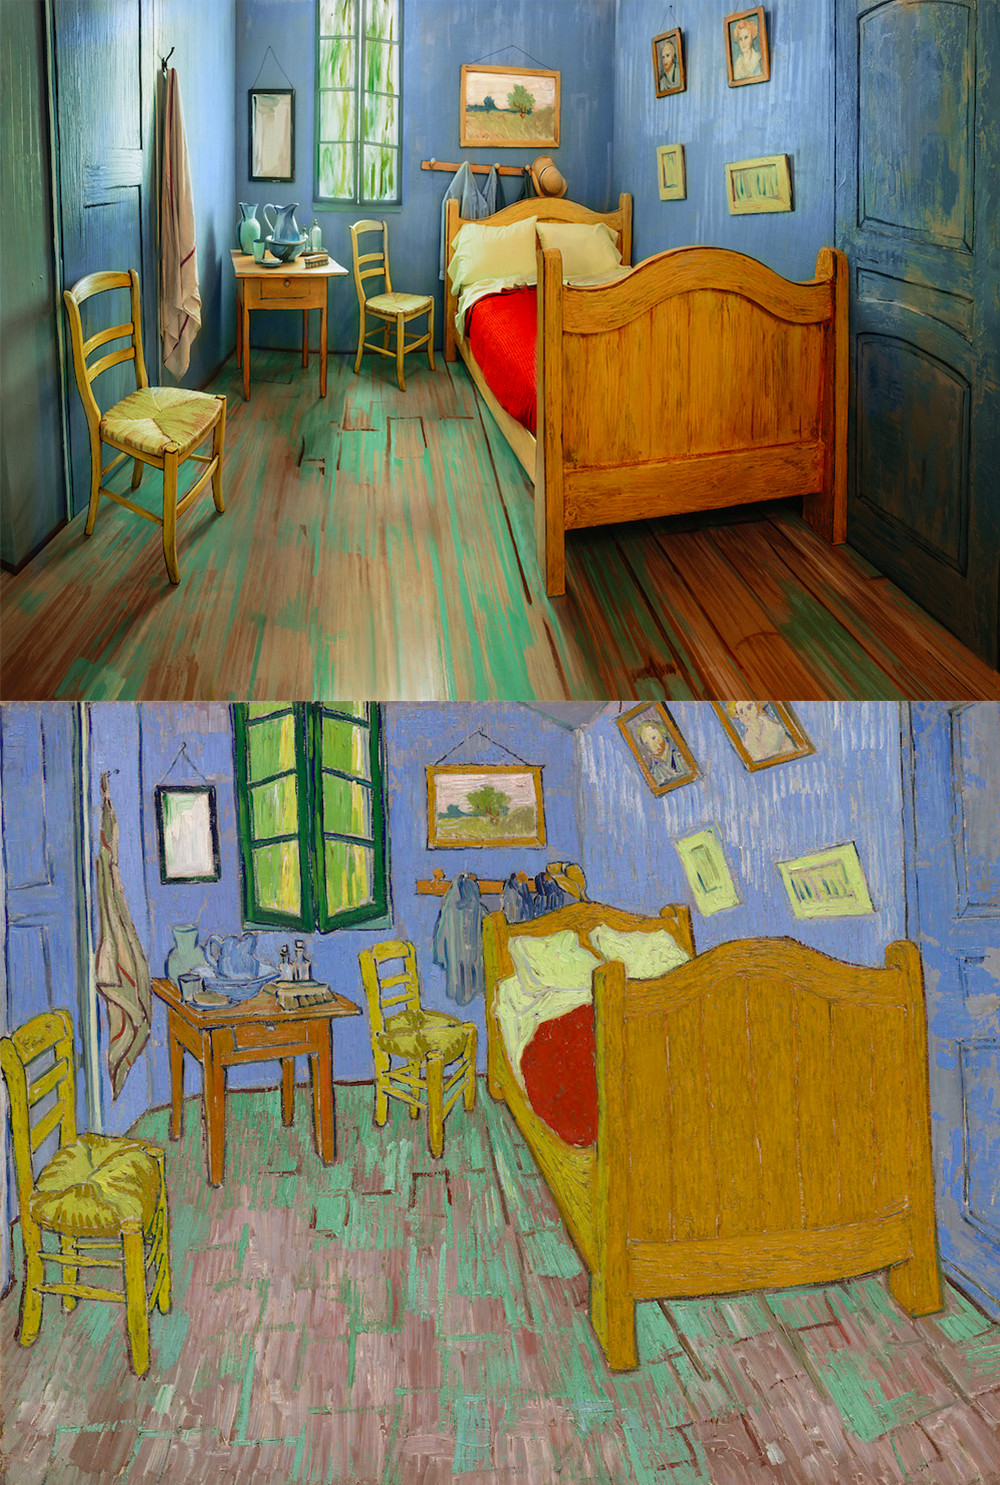 The Art Institute of Chicago Recreates Van Gogh's Famous Bedroom to be Rented on Airbnb | Colossal